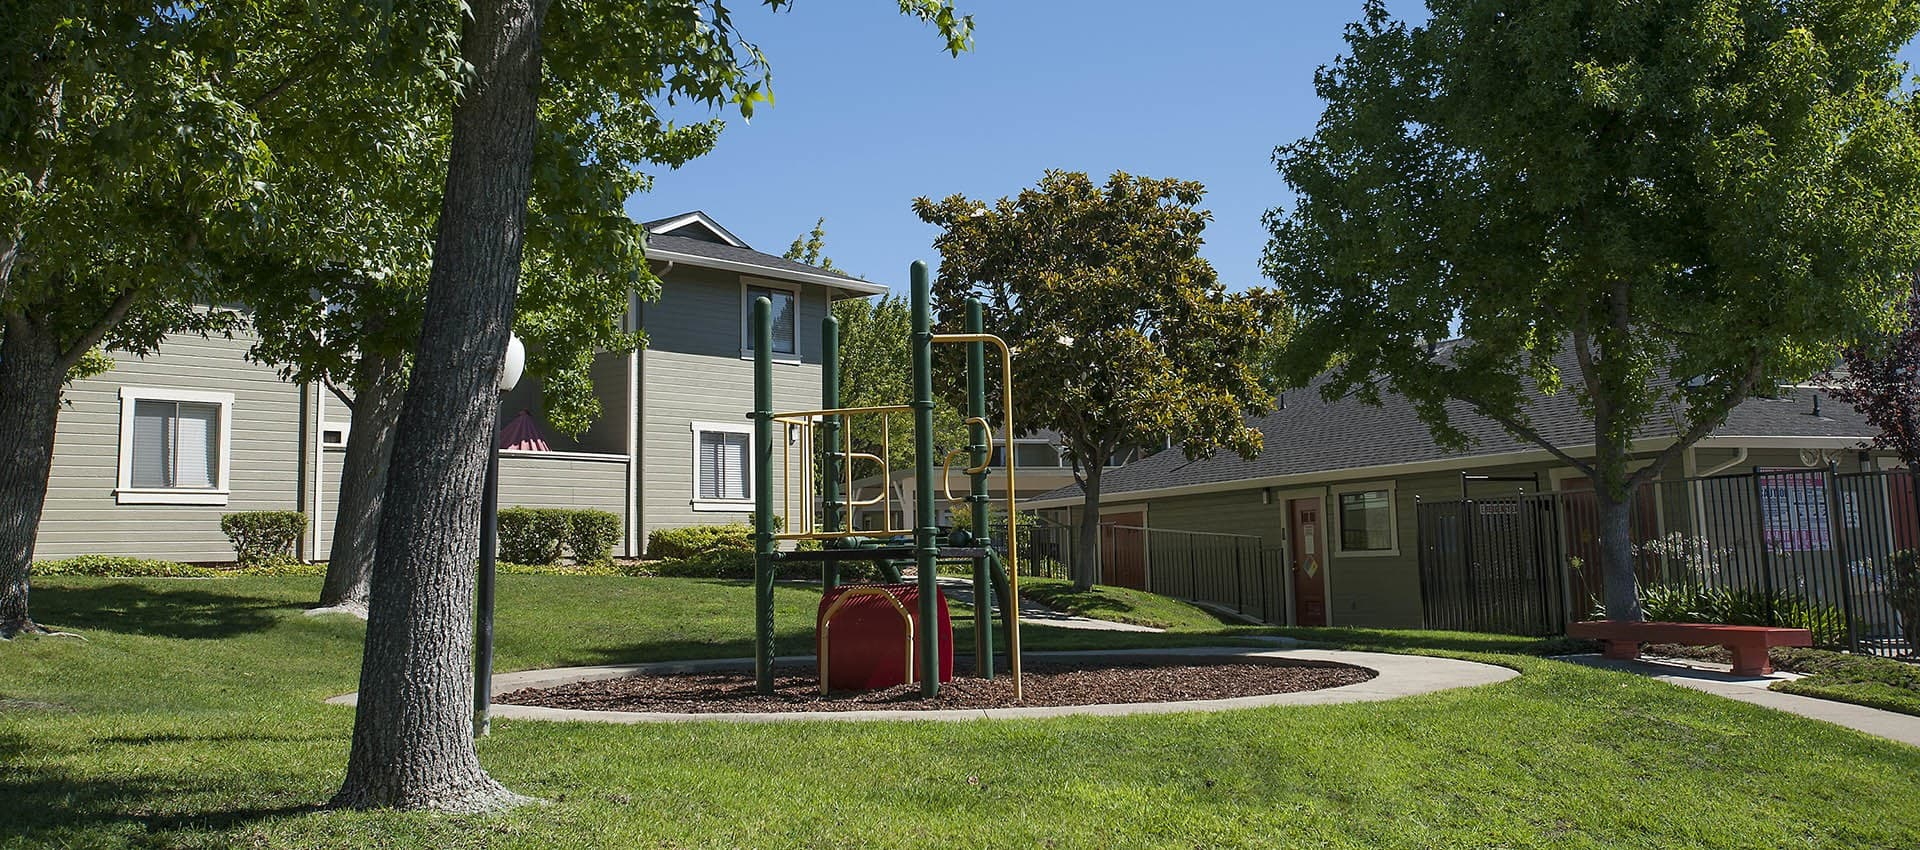 Ridgecrest Apartment Homes has many amenities including a playground